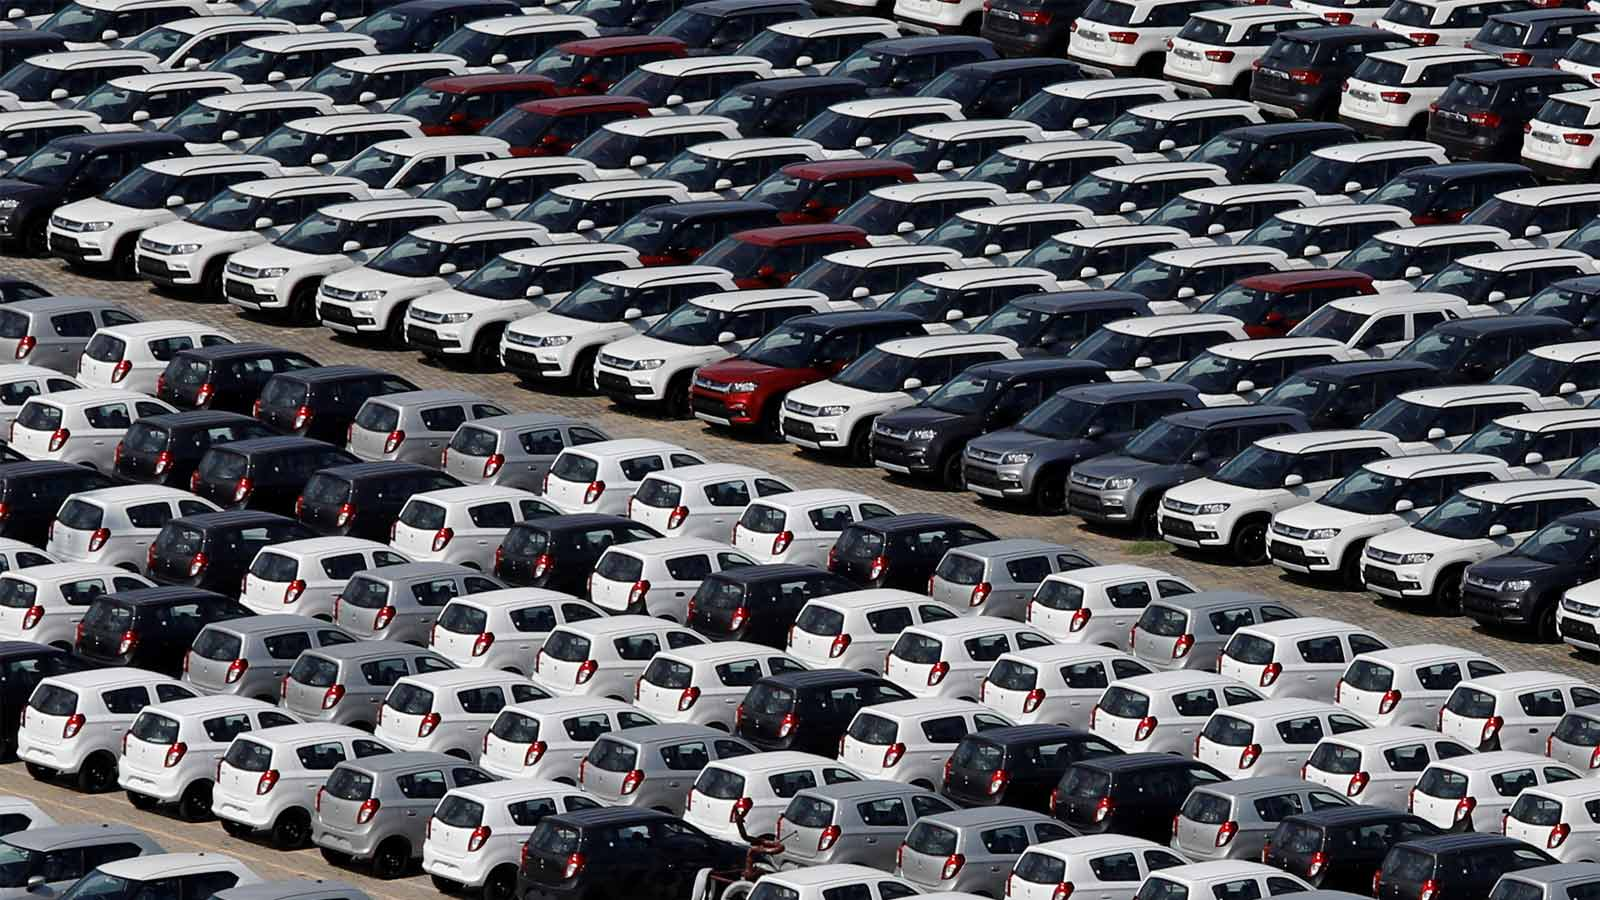 maruti-suzuki-slashes-prices-of-select-models-by-rs-5000